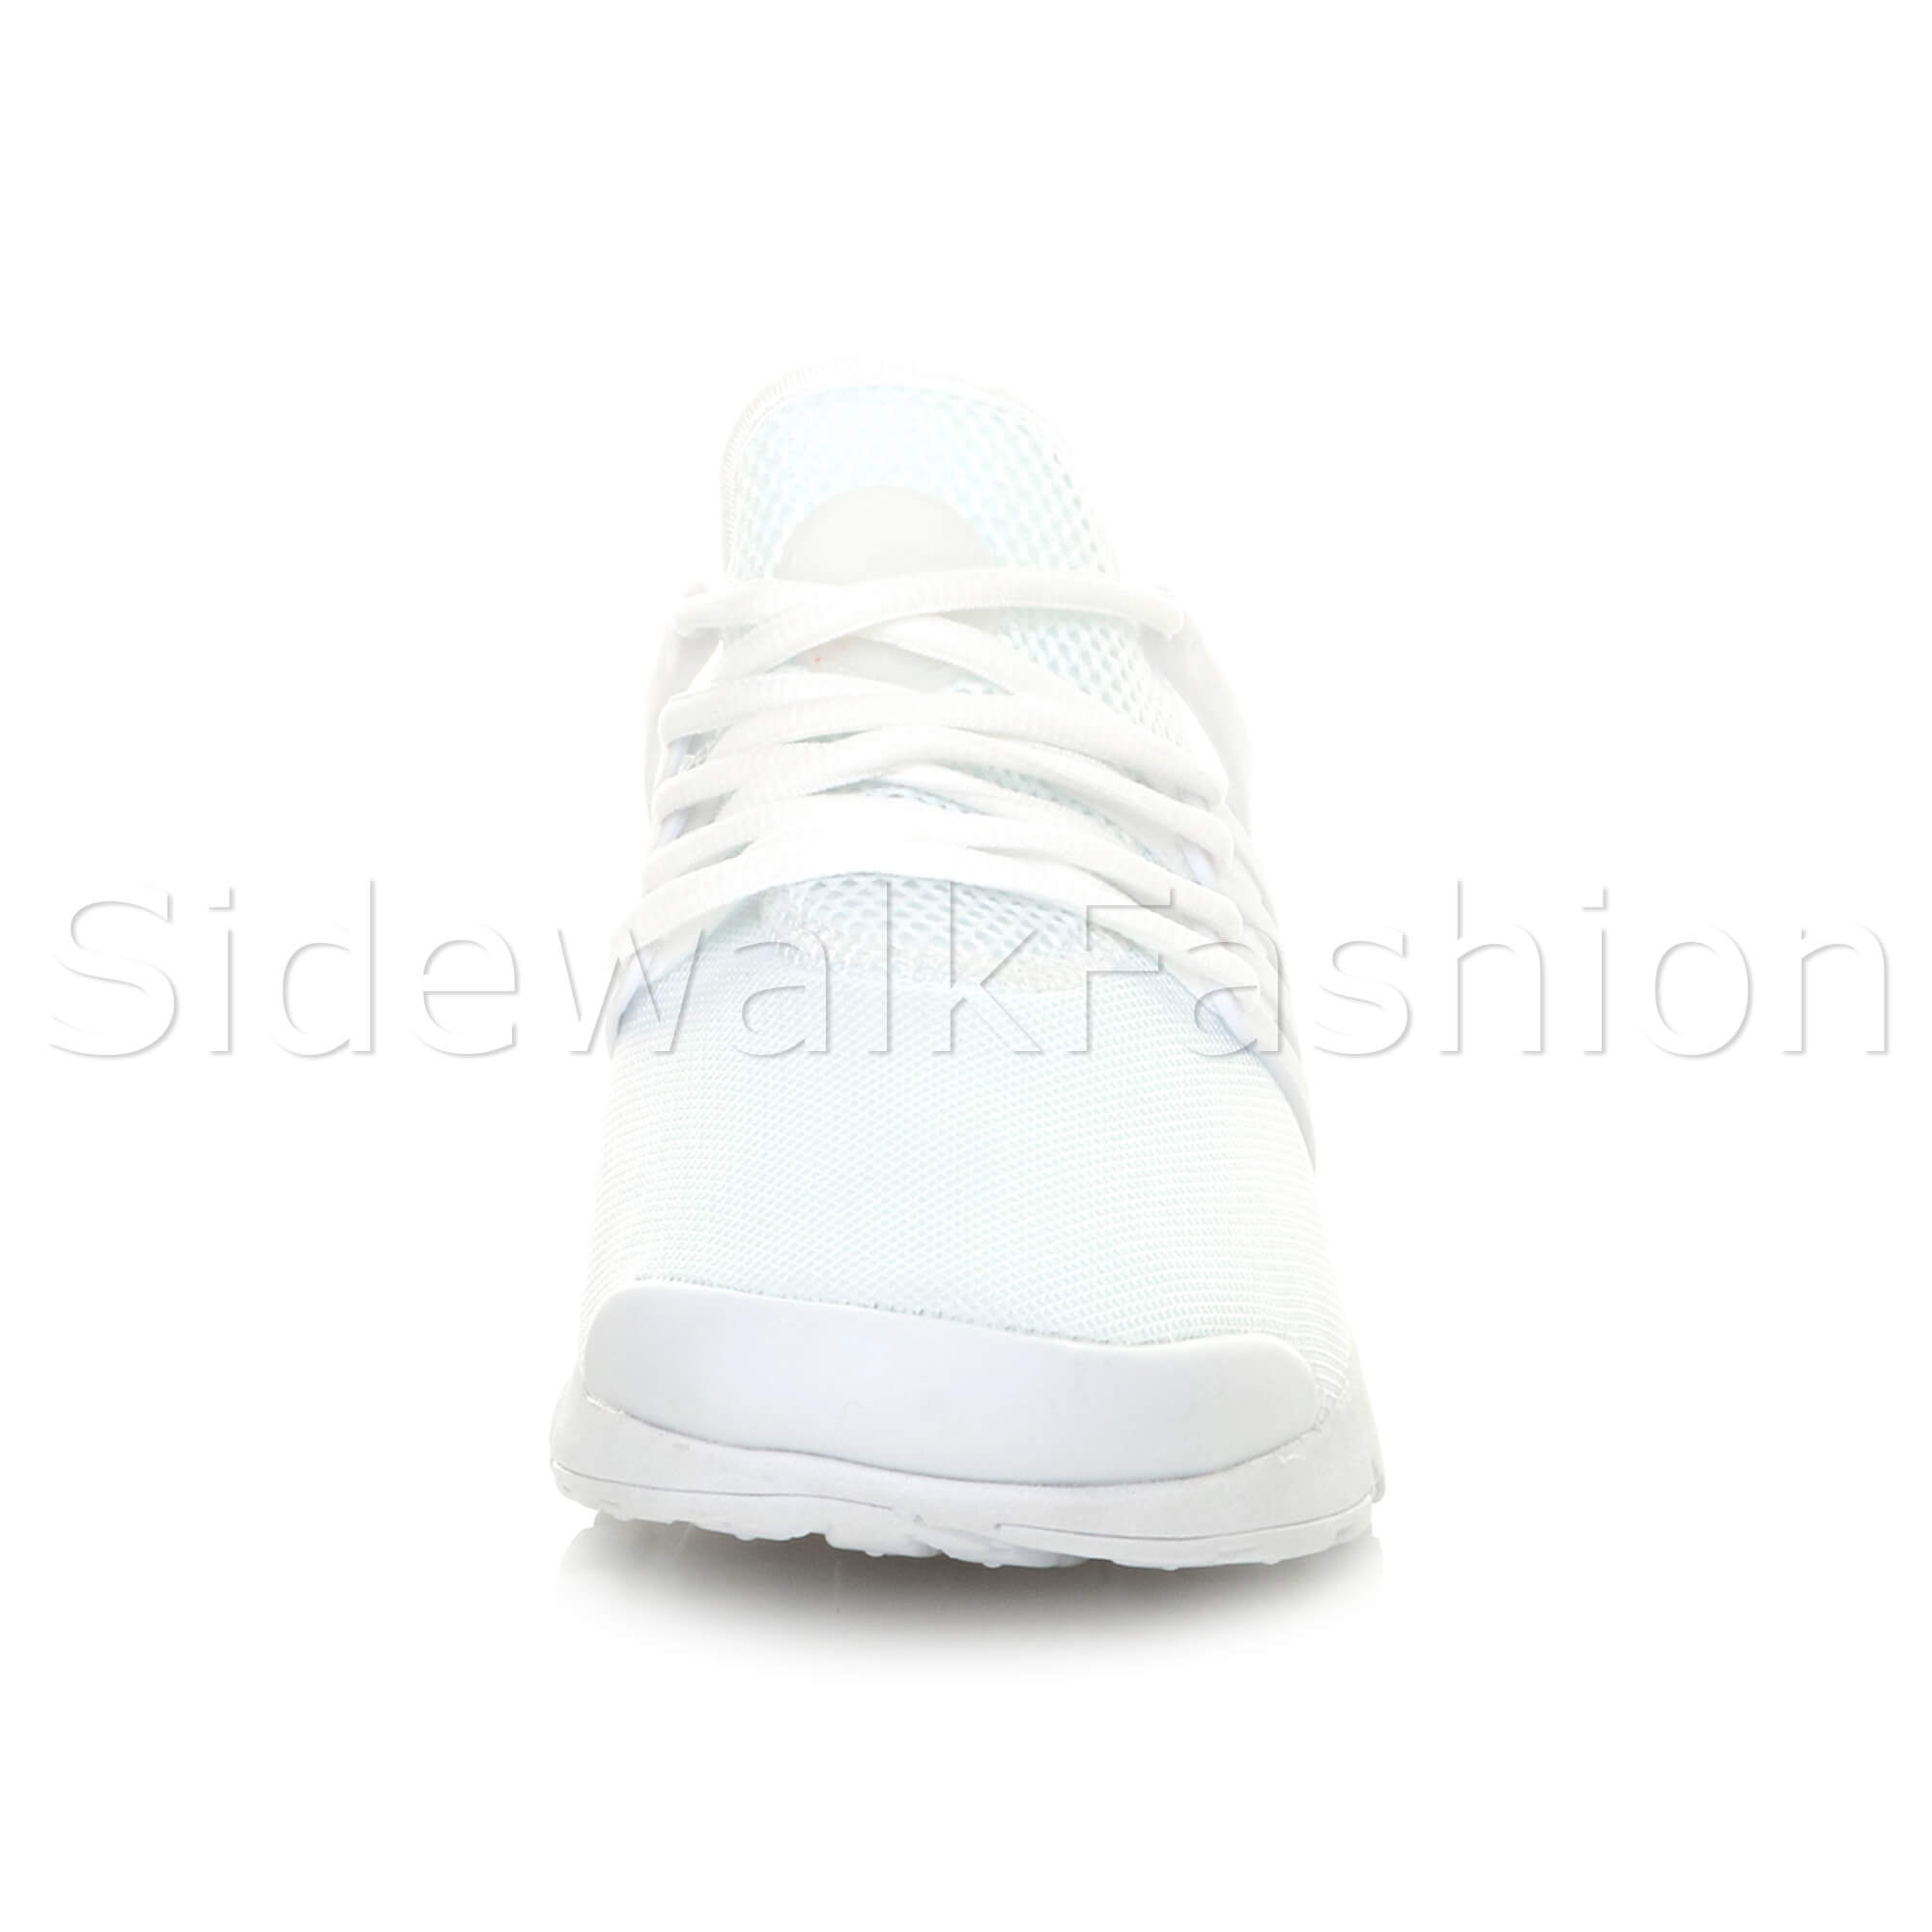 Mens-lace-up-sports-casual-low-top-gym-running-flexible-sneakers-trainers-size miniatuur 31